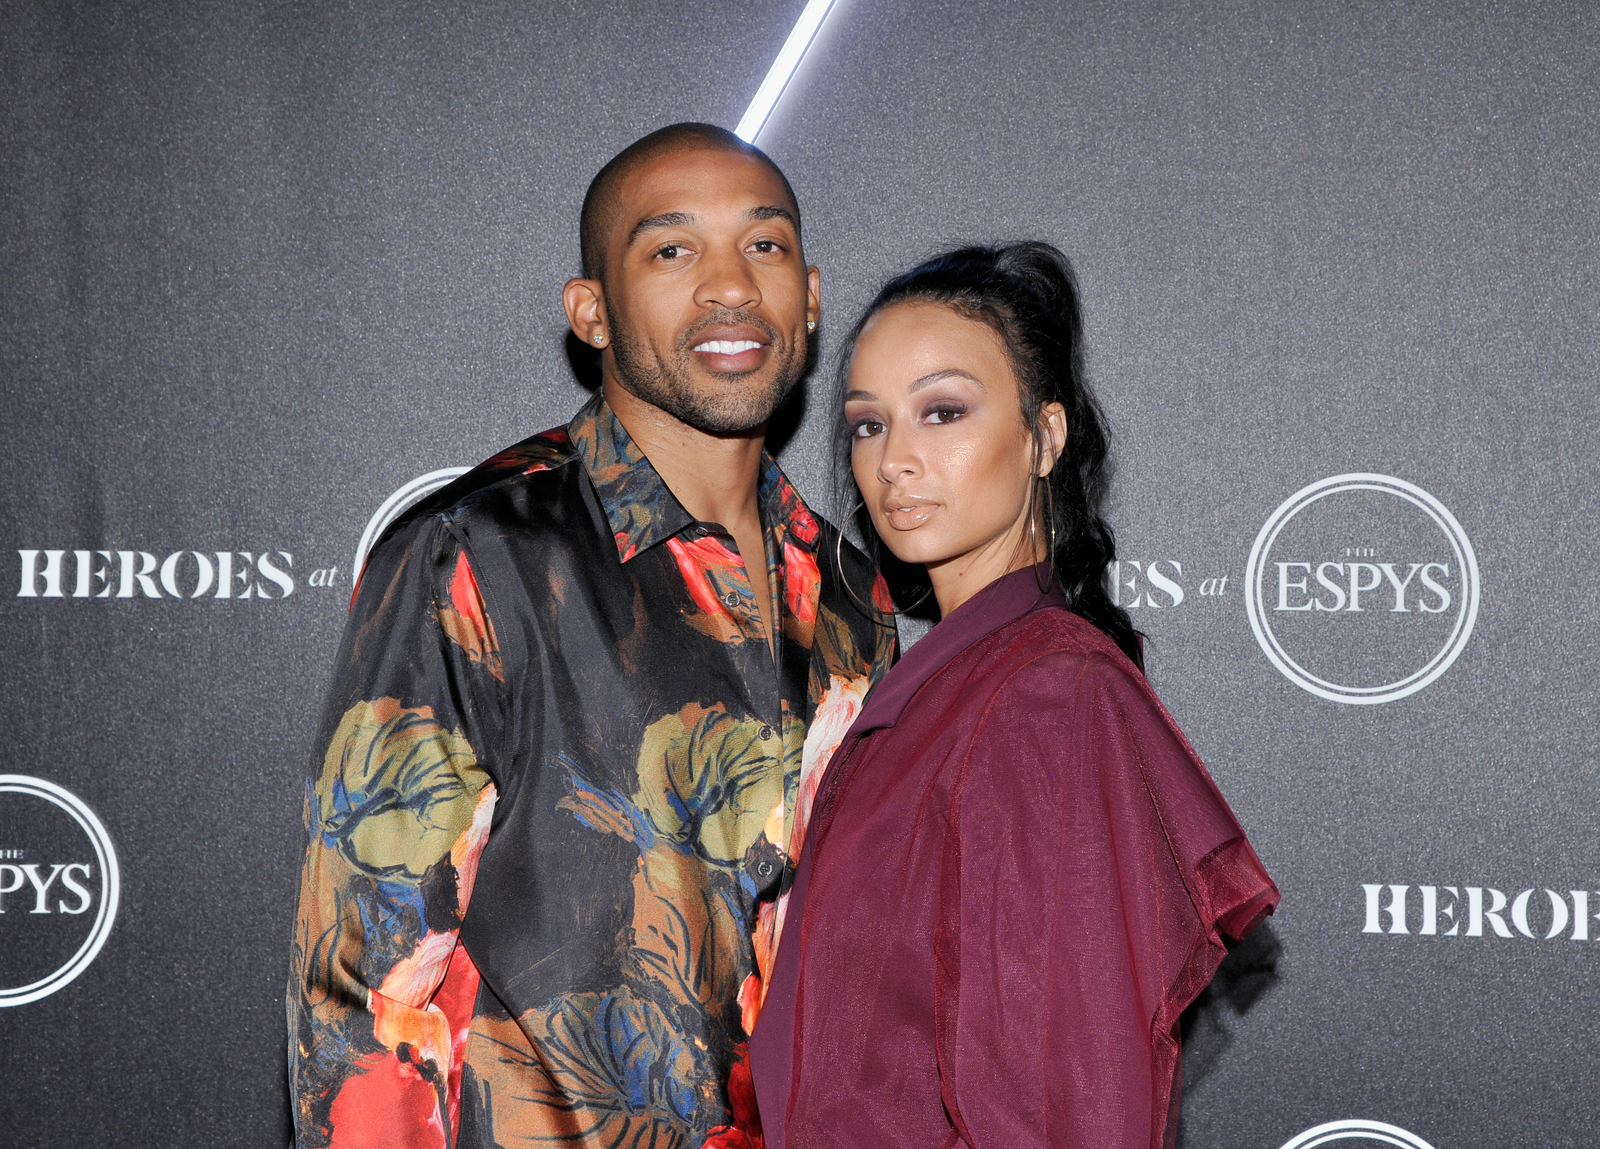 Orlando Scandrick (L) and Draya Michele attend HEROES at The ESPYS at City Market Social House on July 17, 2018 in Los Angeles, California.